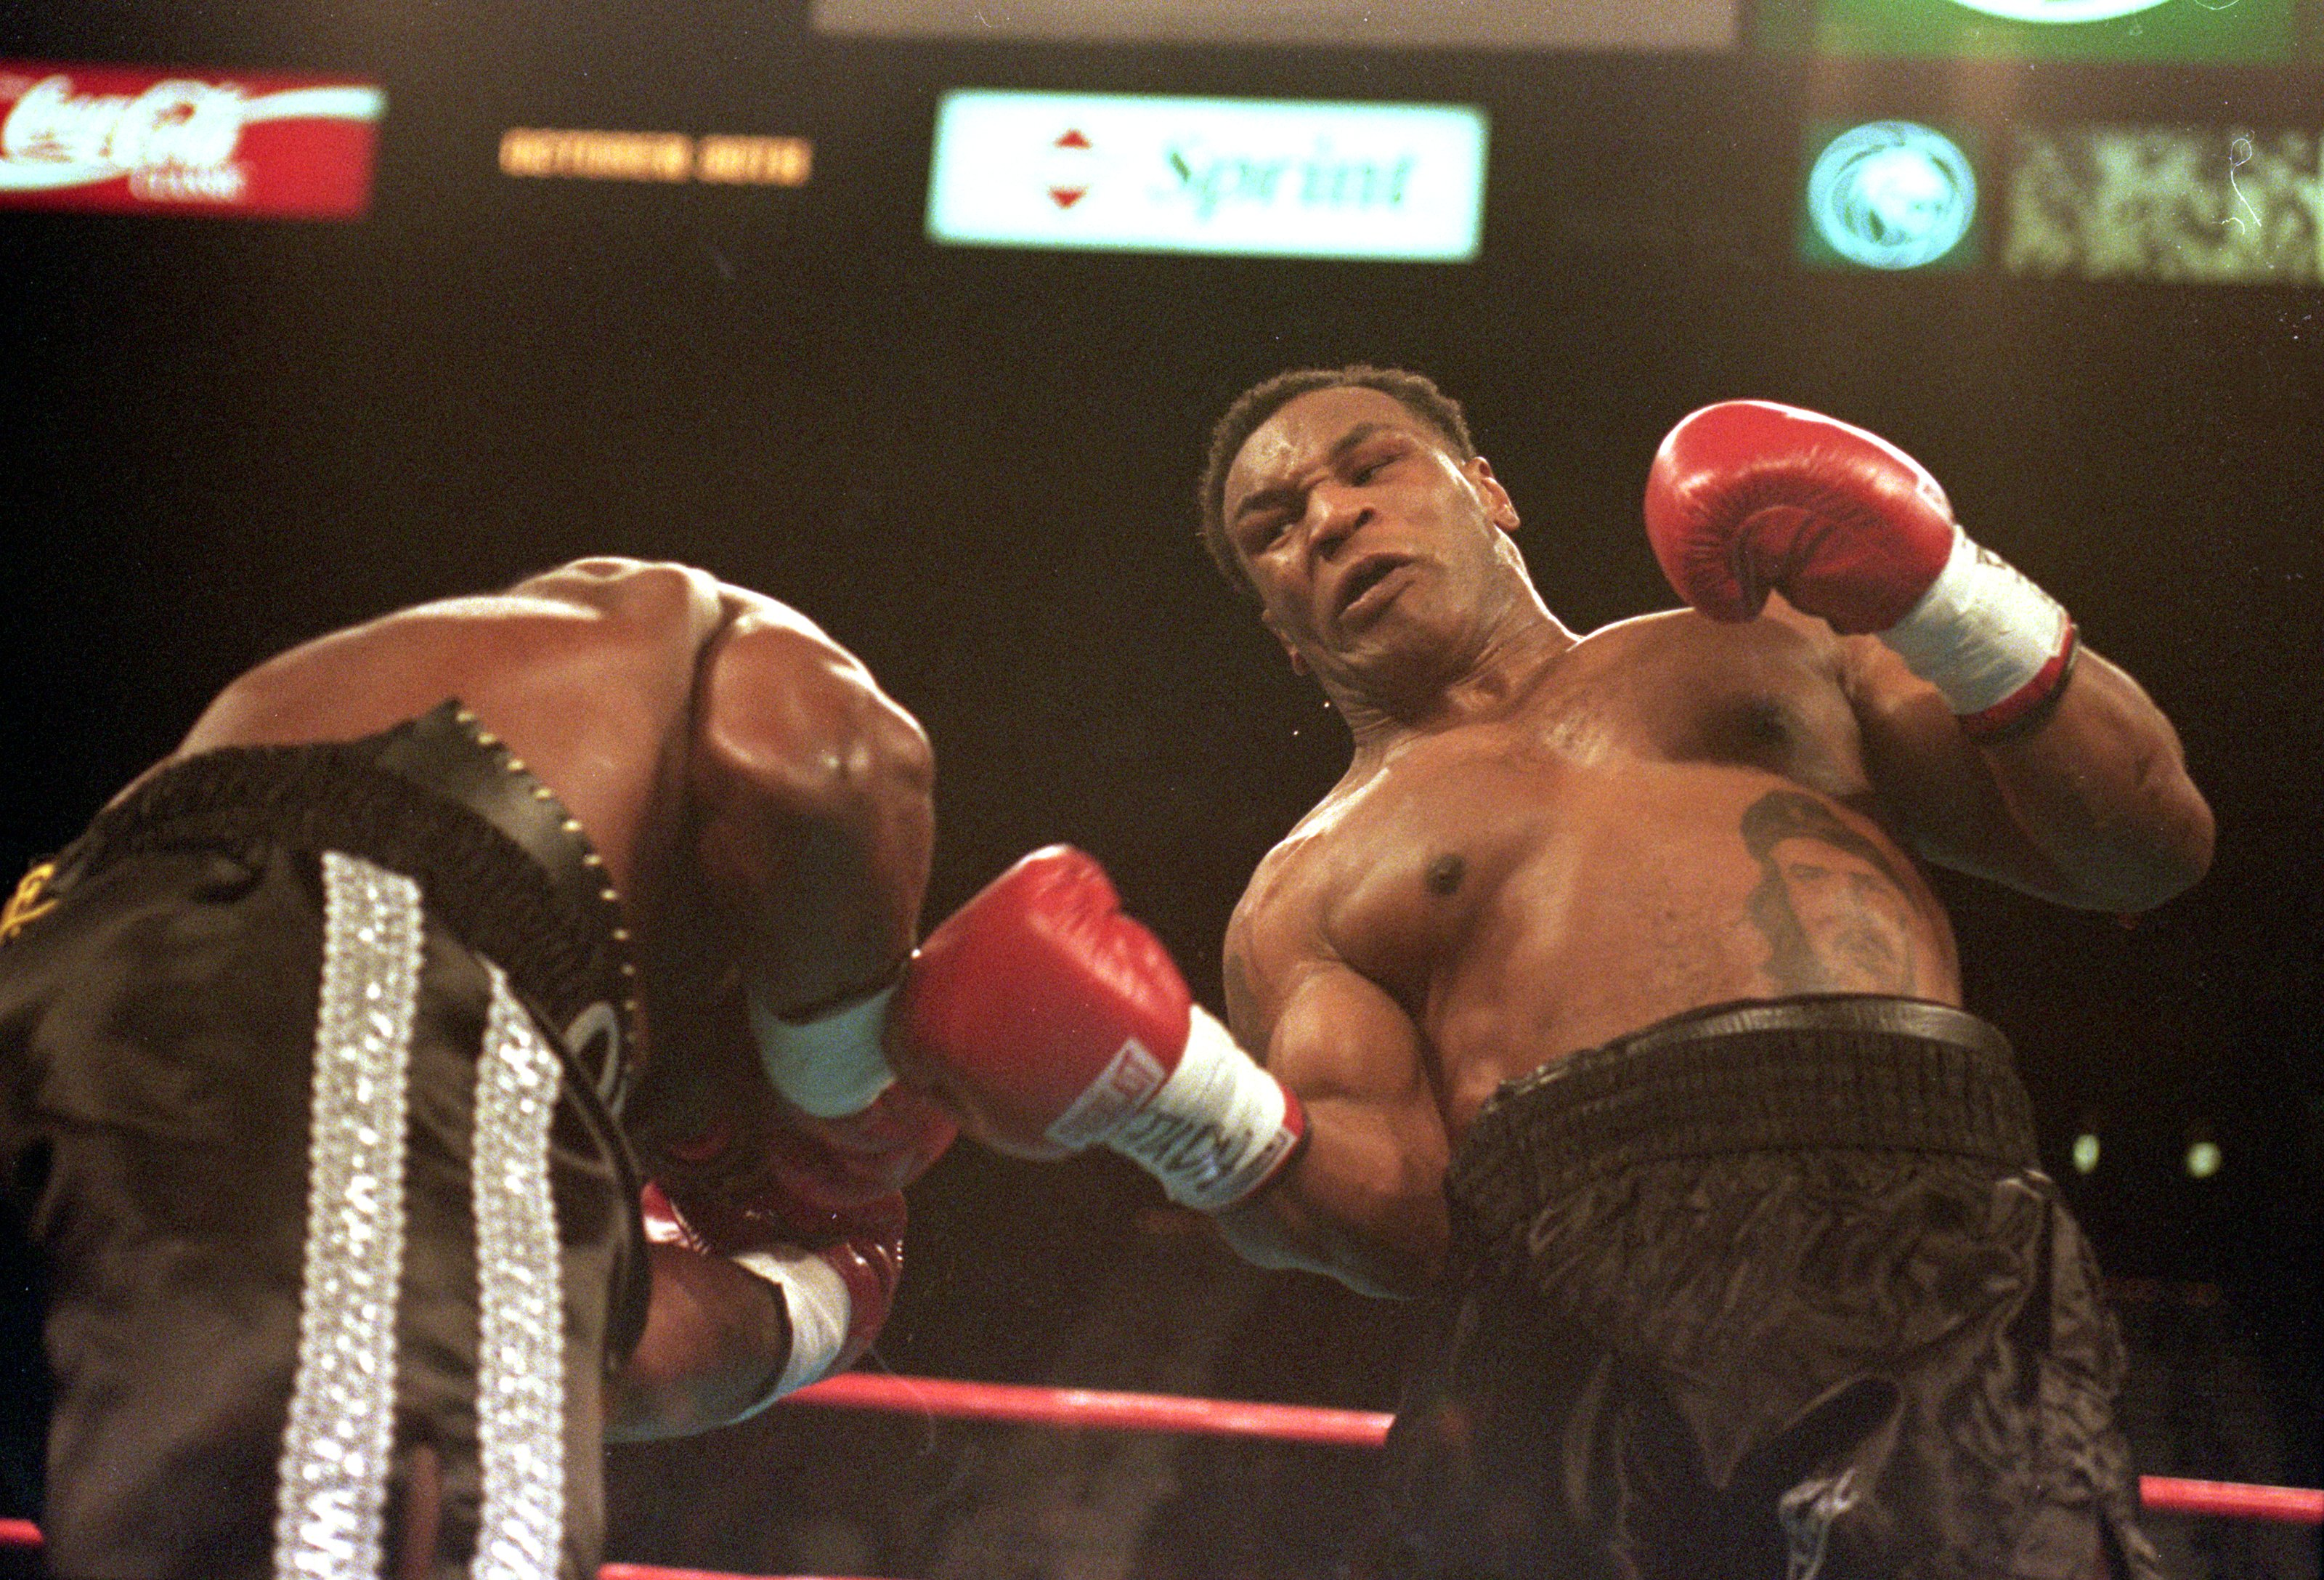 23 Oct 1999: Mike Tyson lands right upper -cut during the fight against Orlin Norris at the MGM Grand Hotel in Las Vegas, Nevada. The fight ended in a no contest.